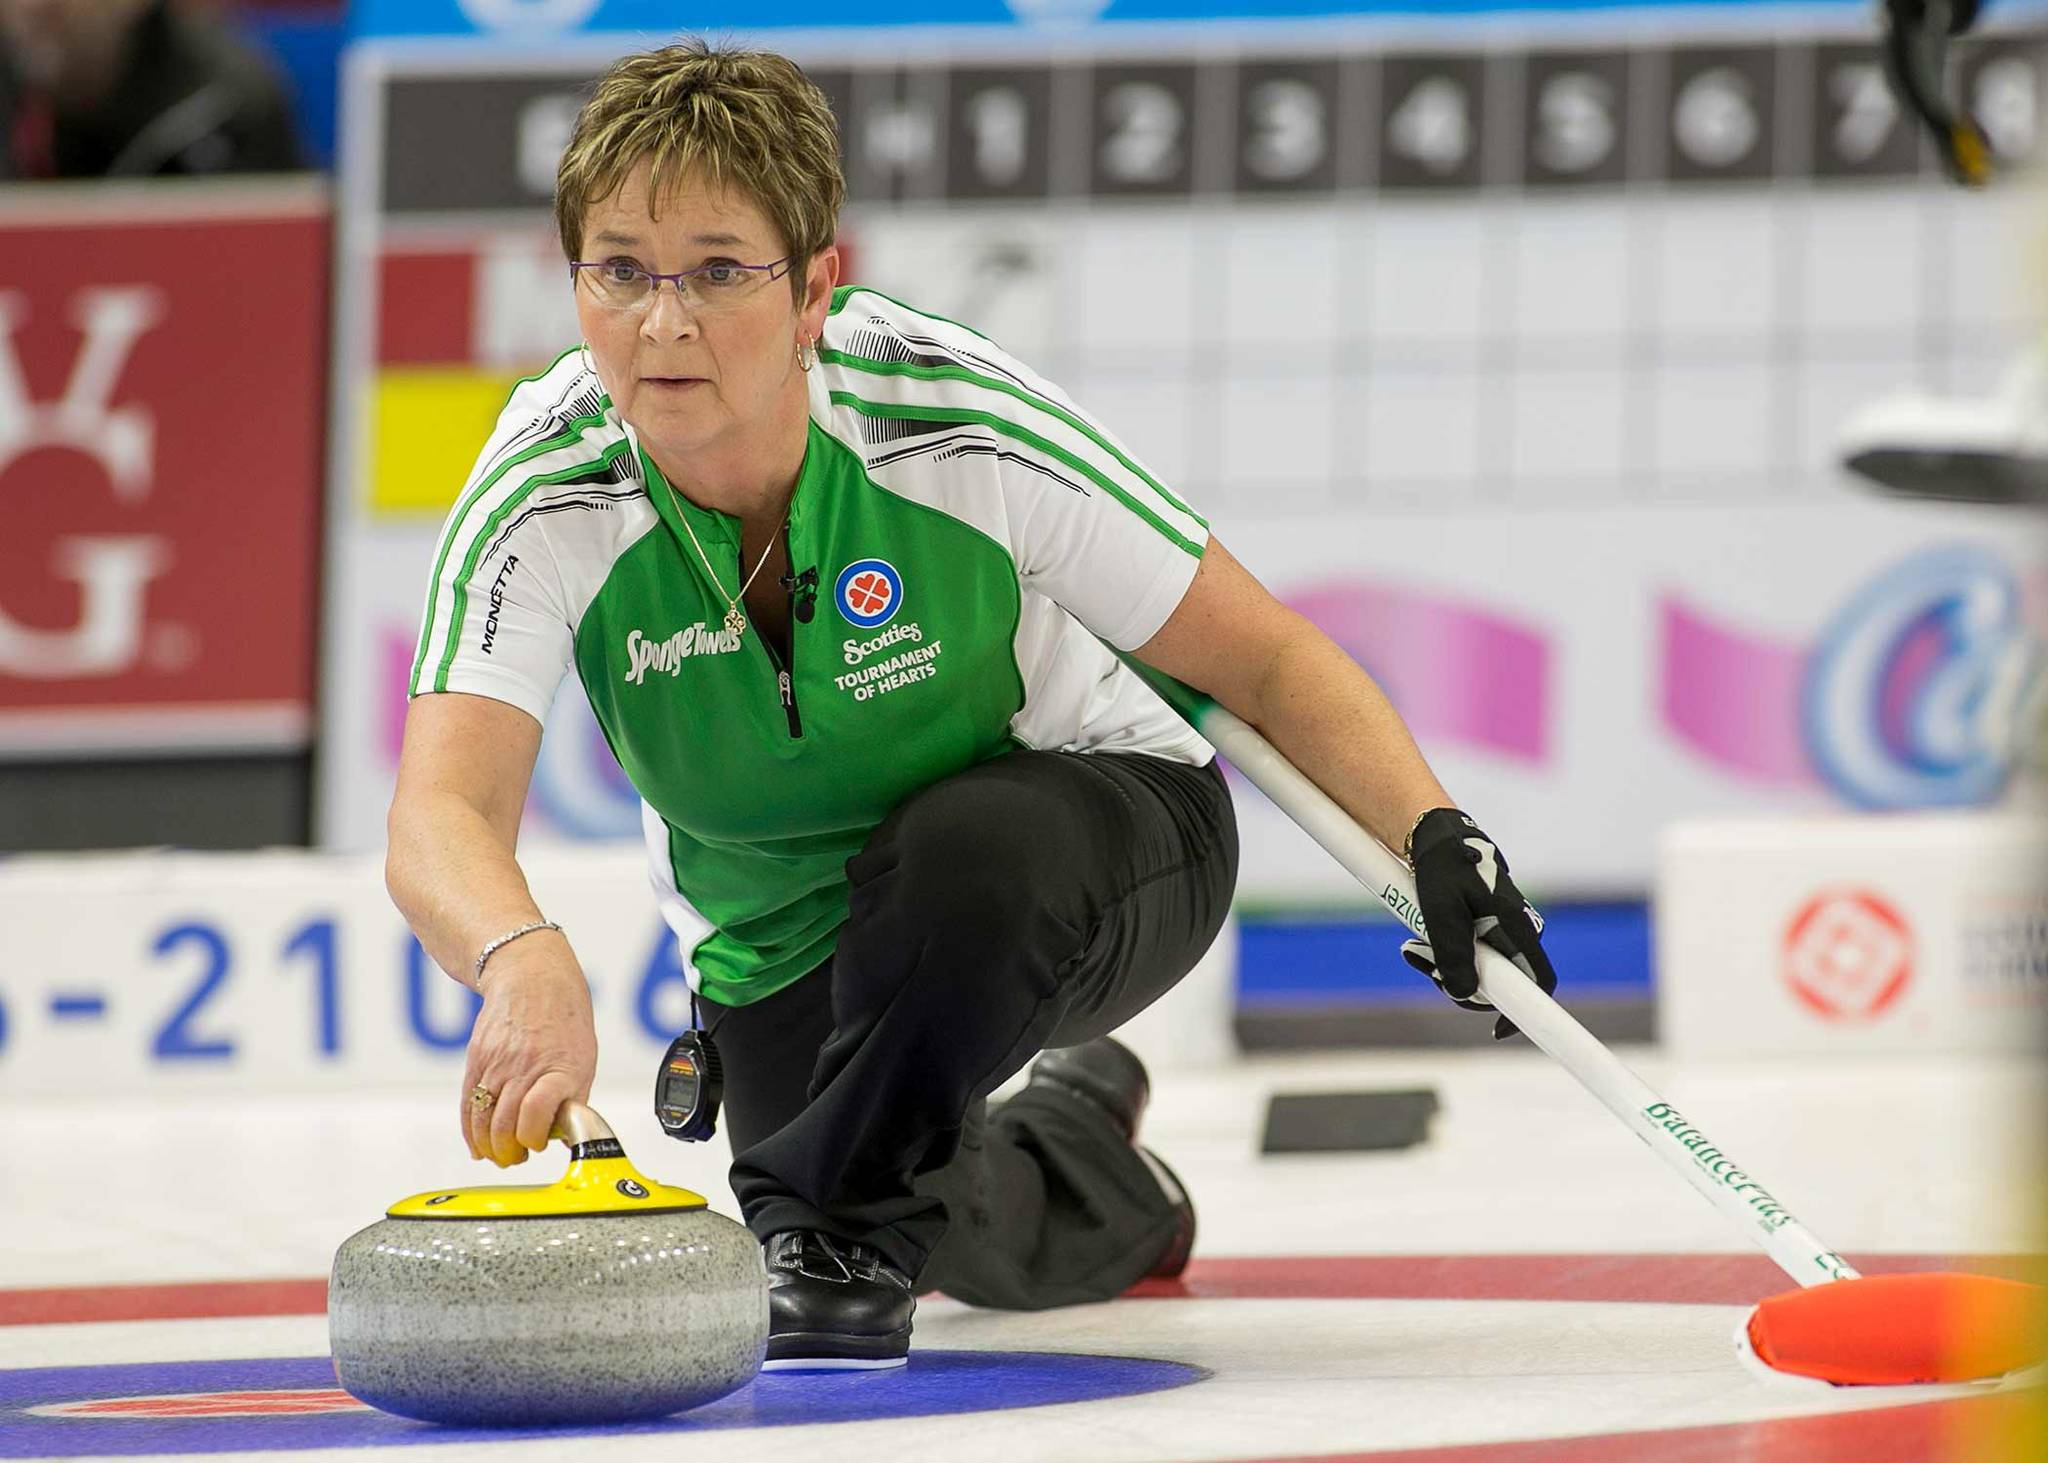 Top Canadian curlers clash at 2019 Everest senior men's and women's championships